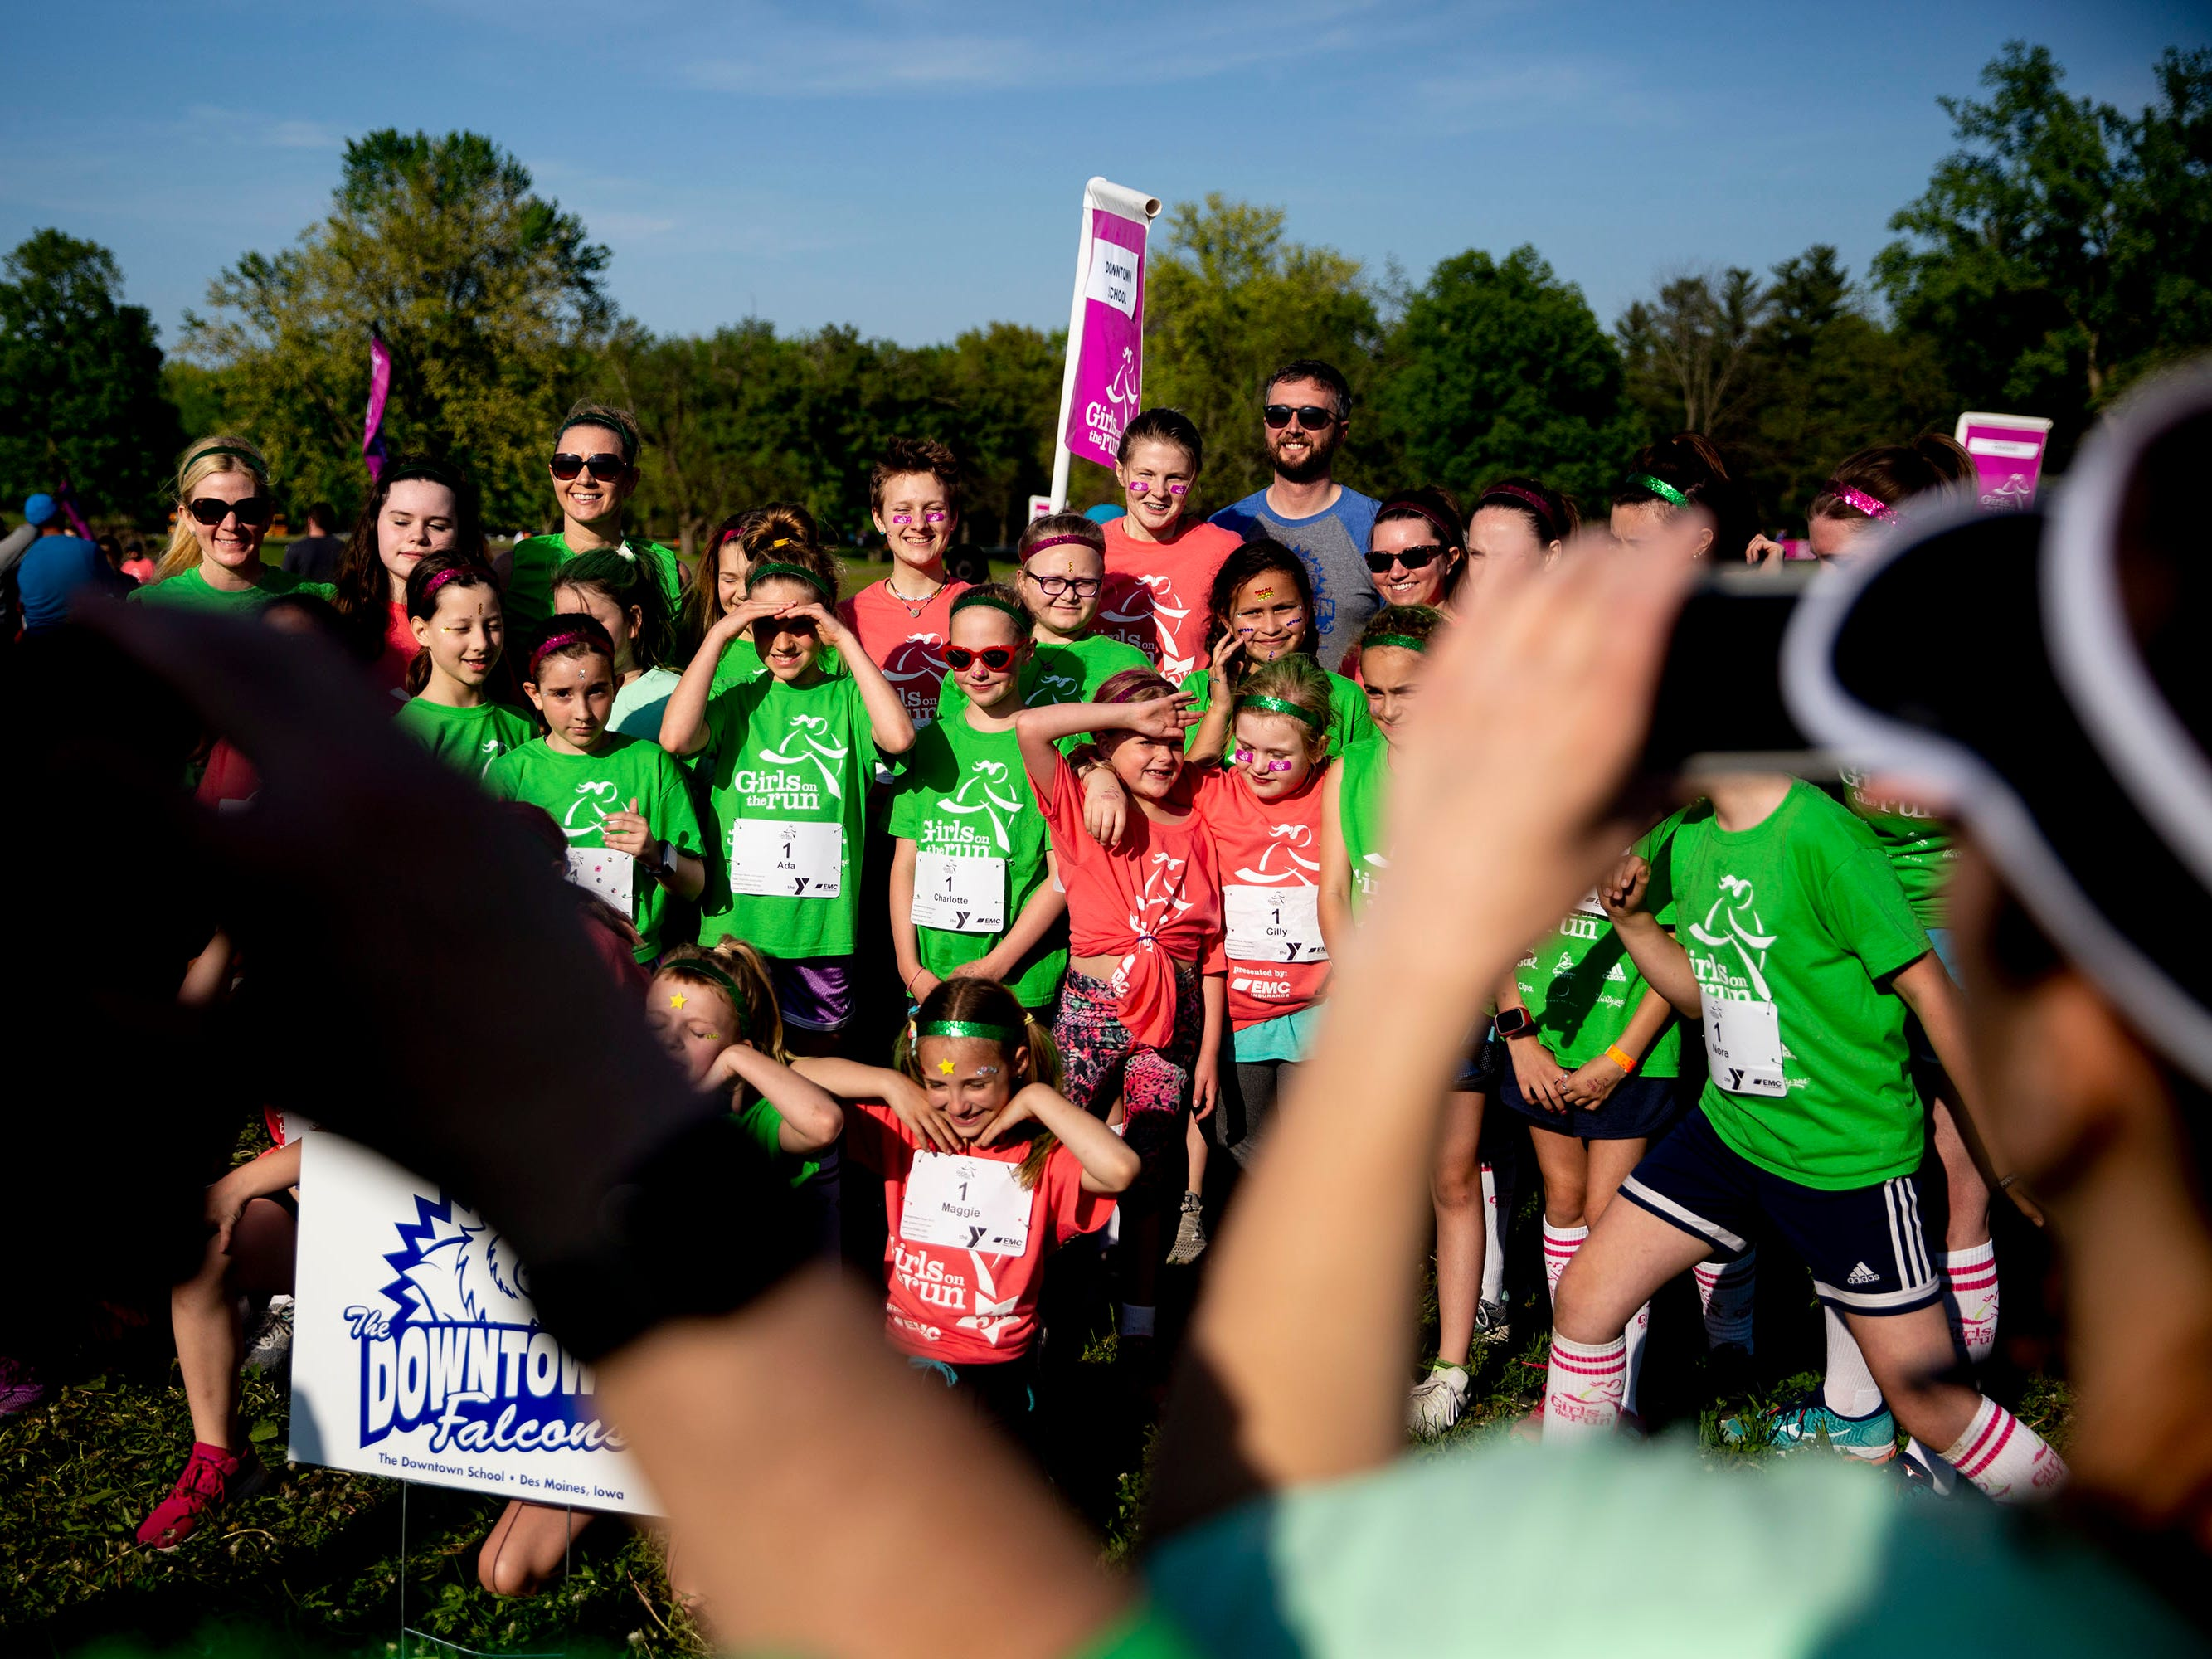 A group of runners poses for a photo before the Girls on the Run celebration 5K on Tuesday, May 14, 2019, in Water Works Park in Des Moines.